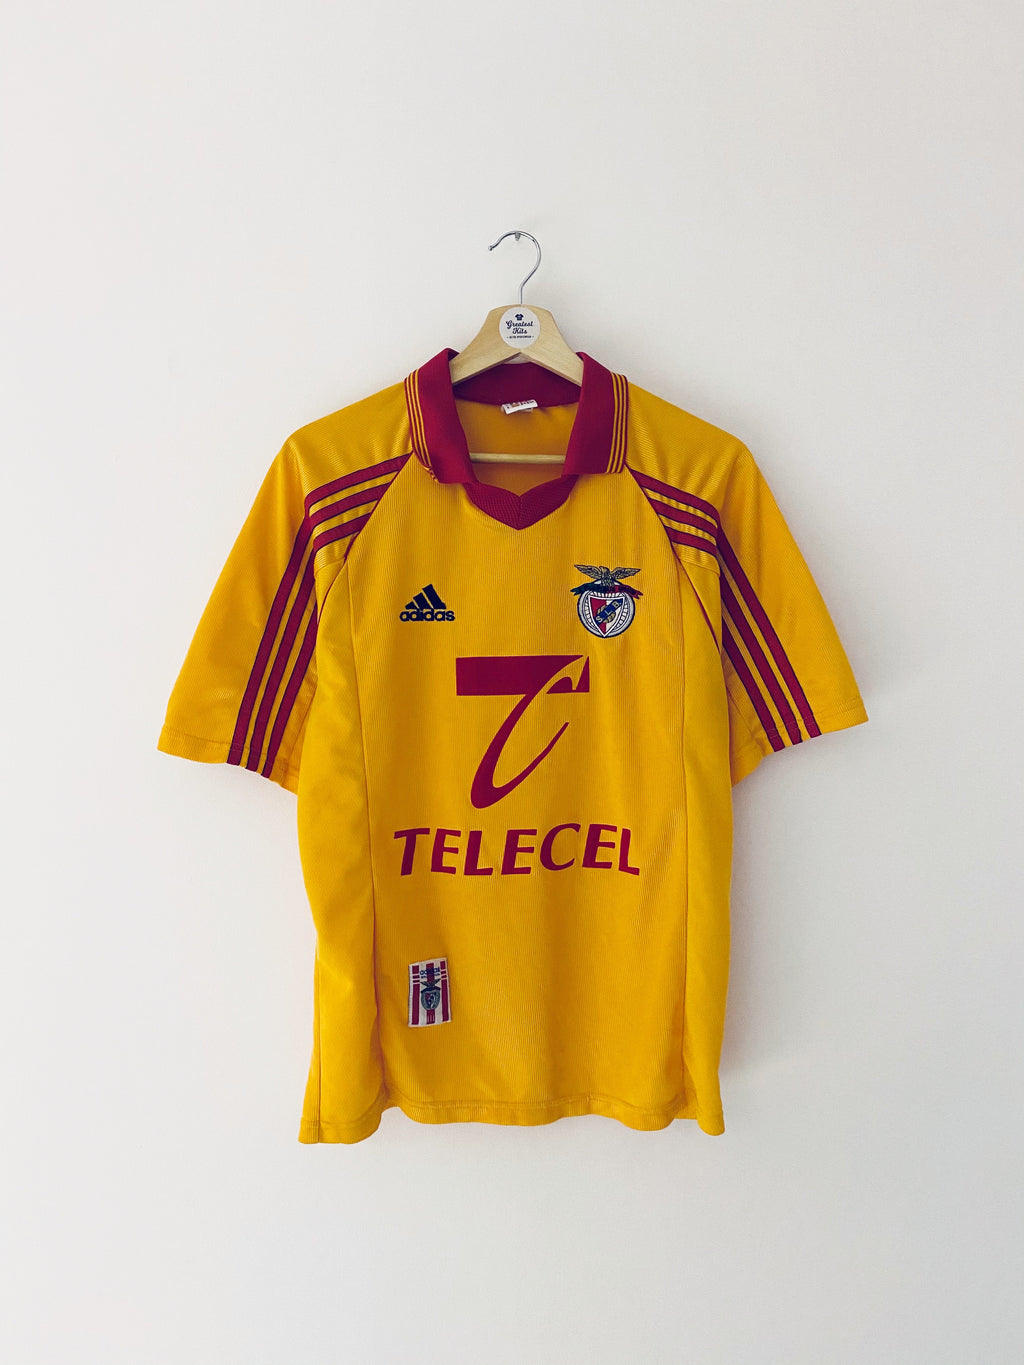 1998/99 Benfica Away Shirt (S) 8/10